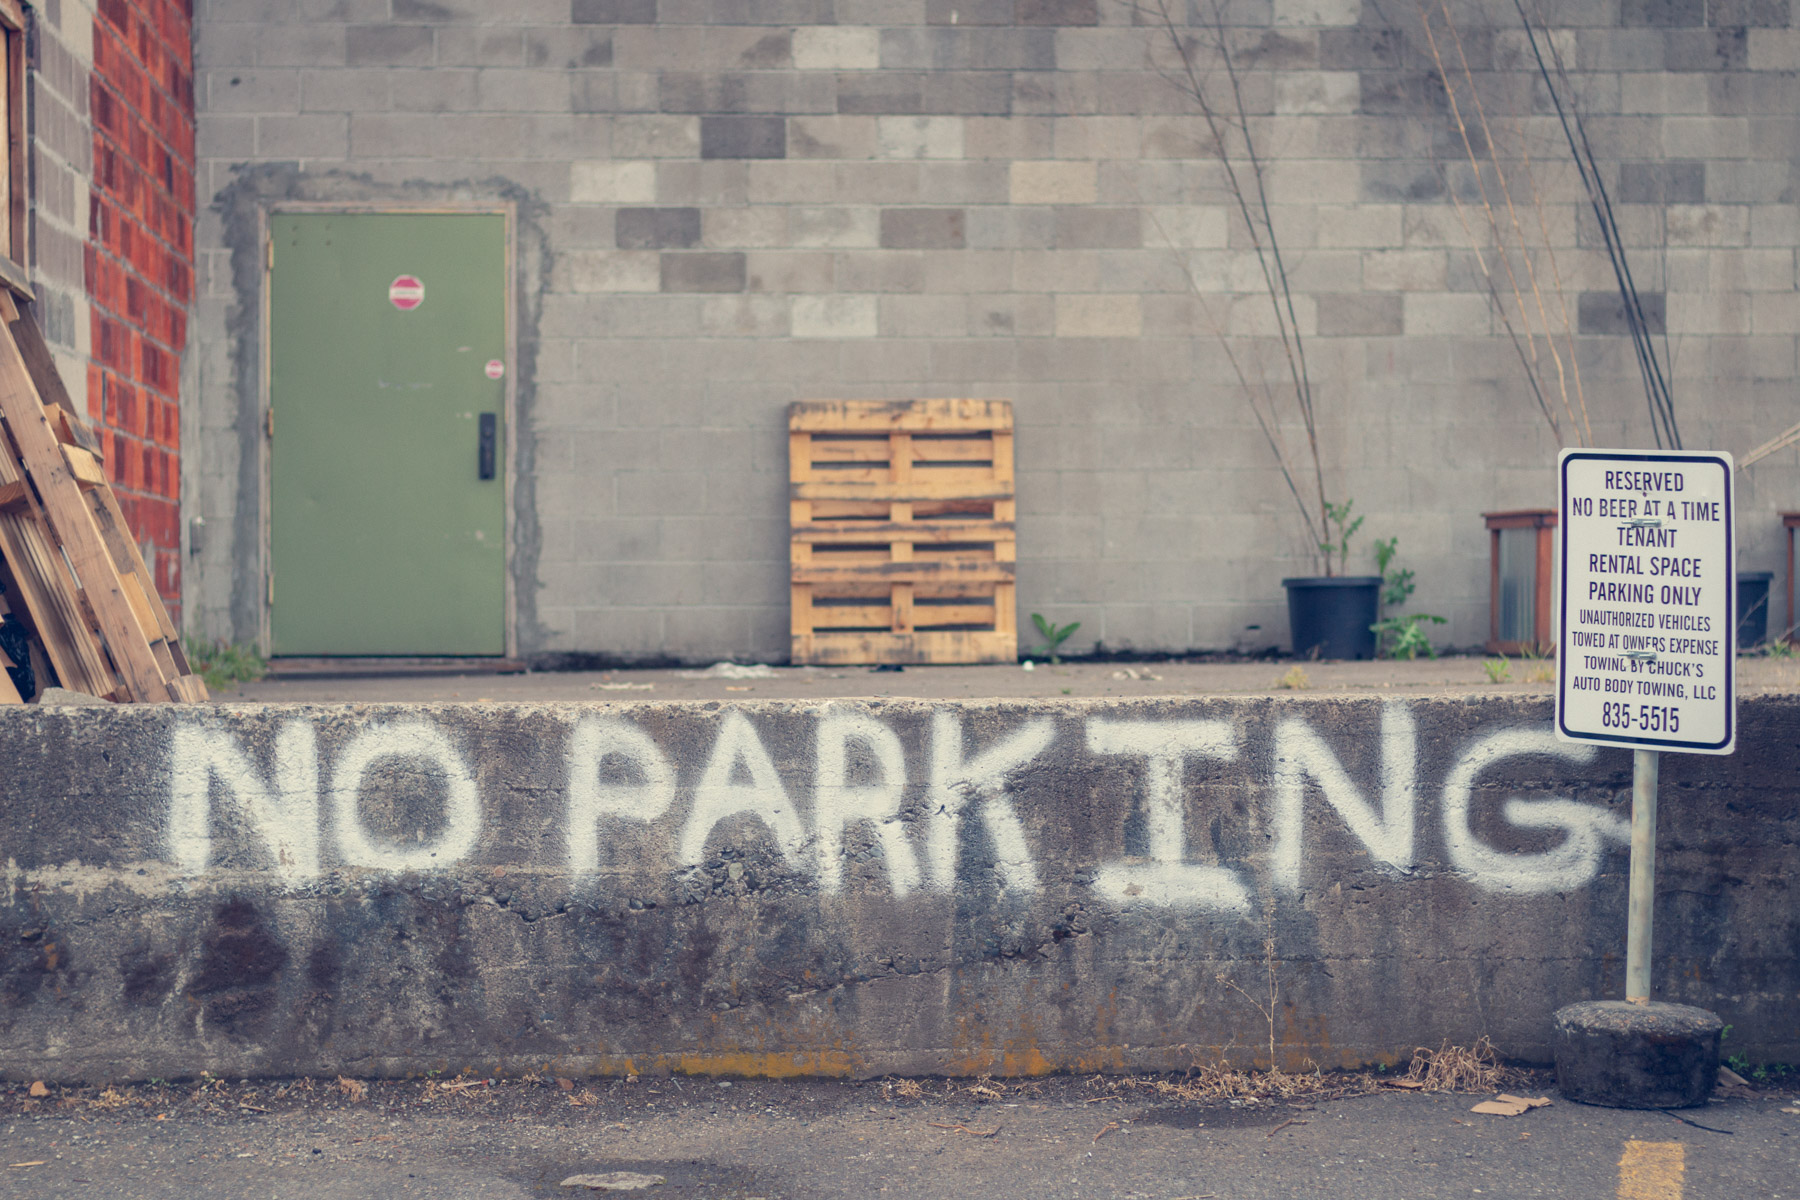 No parking, unless it's absolutely necessary.